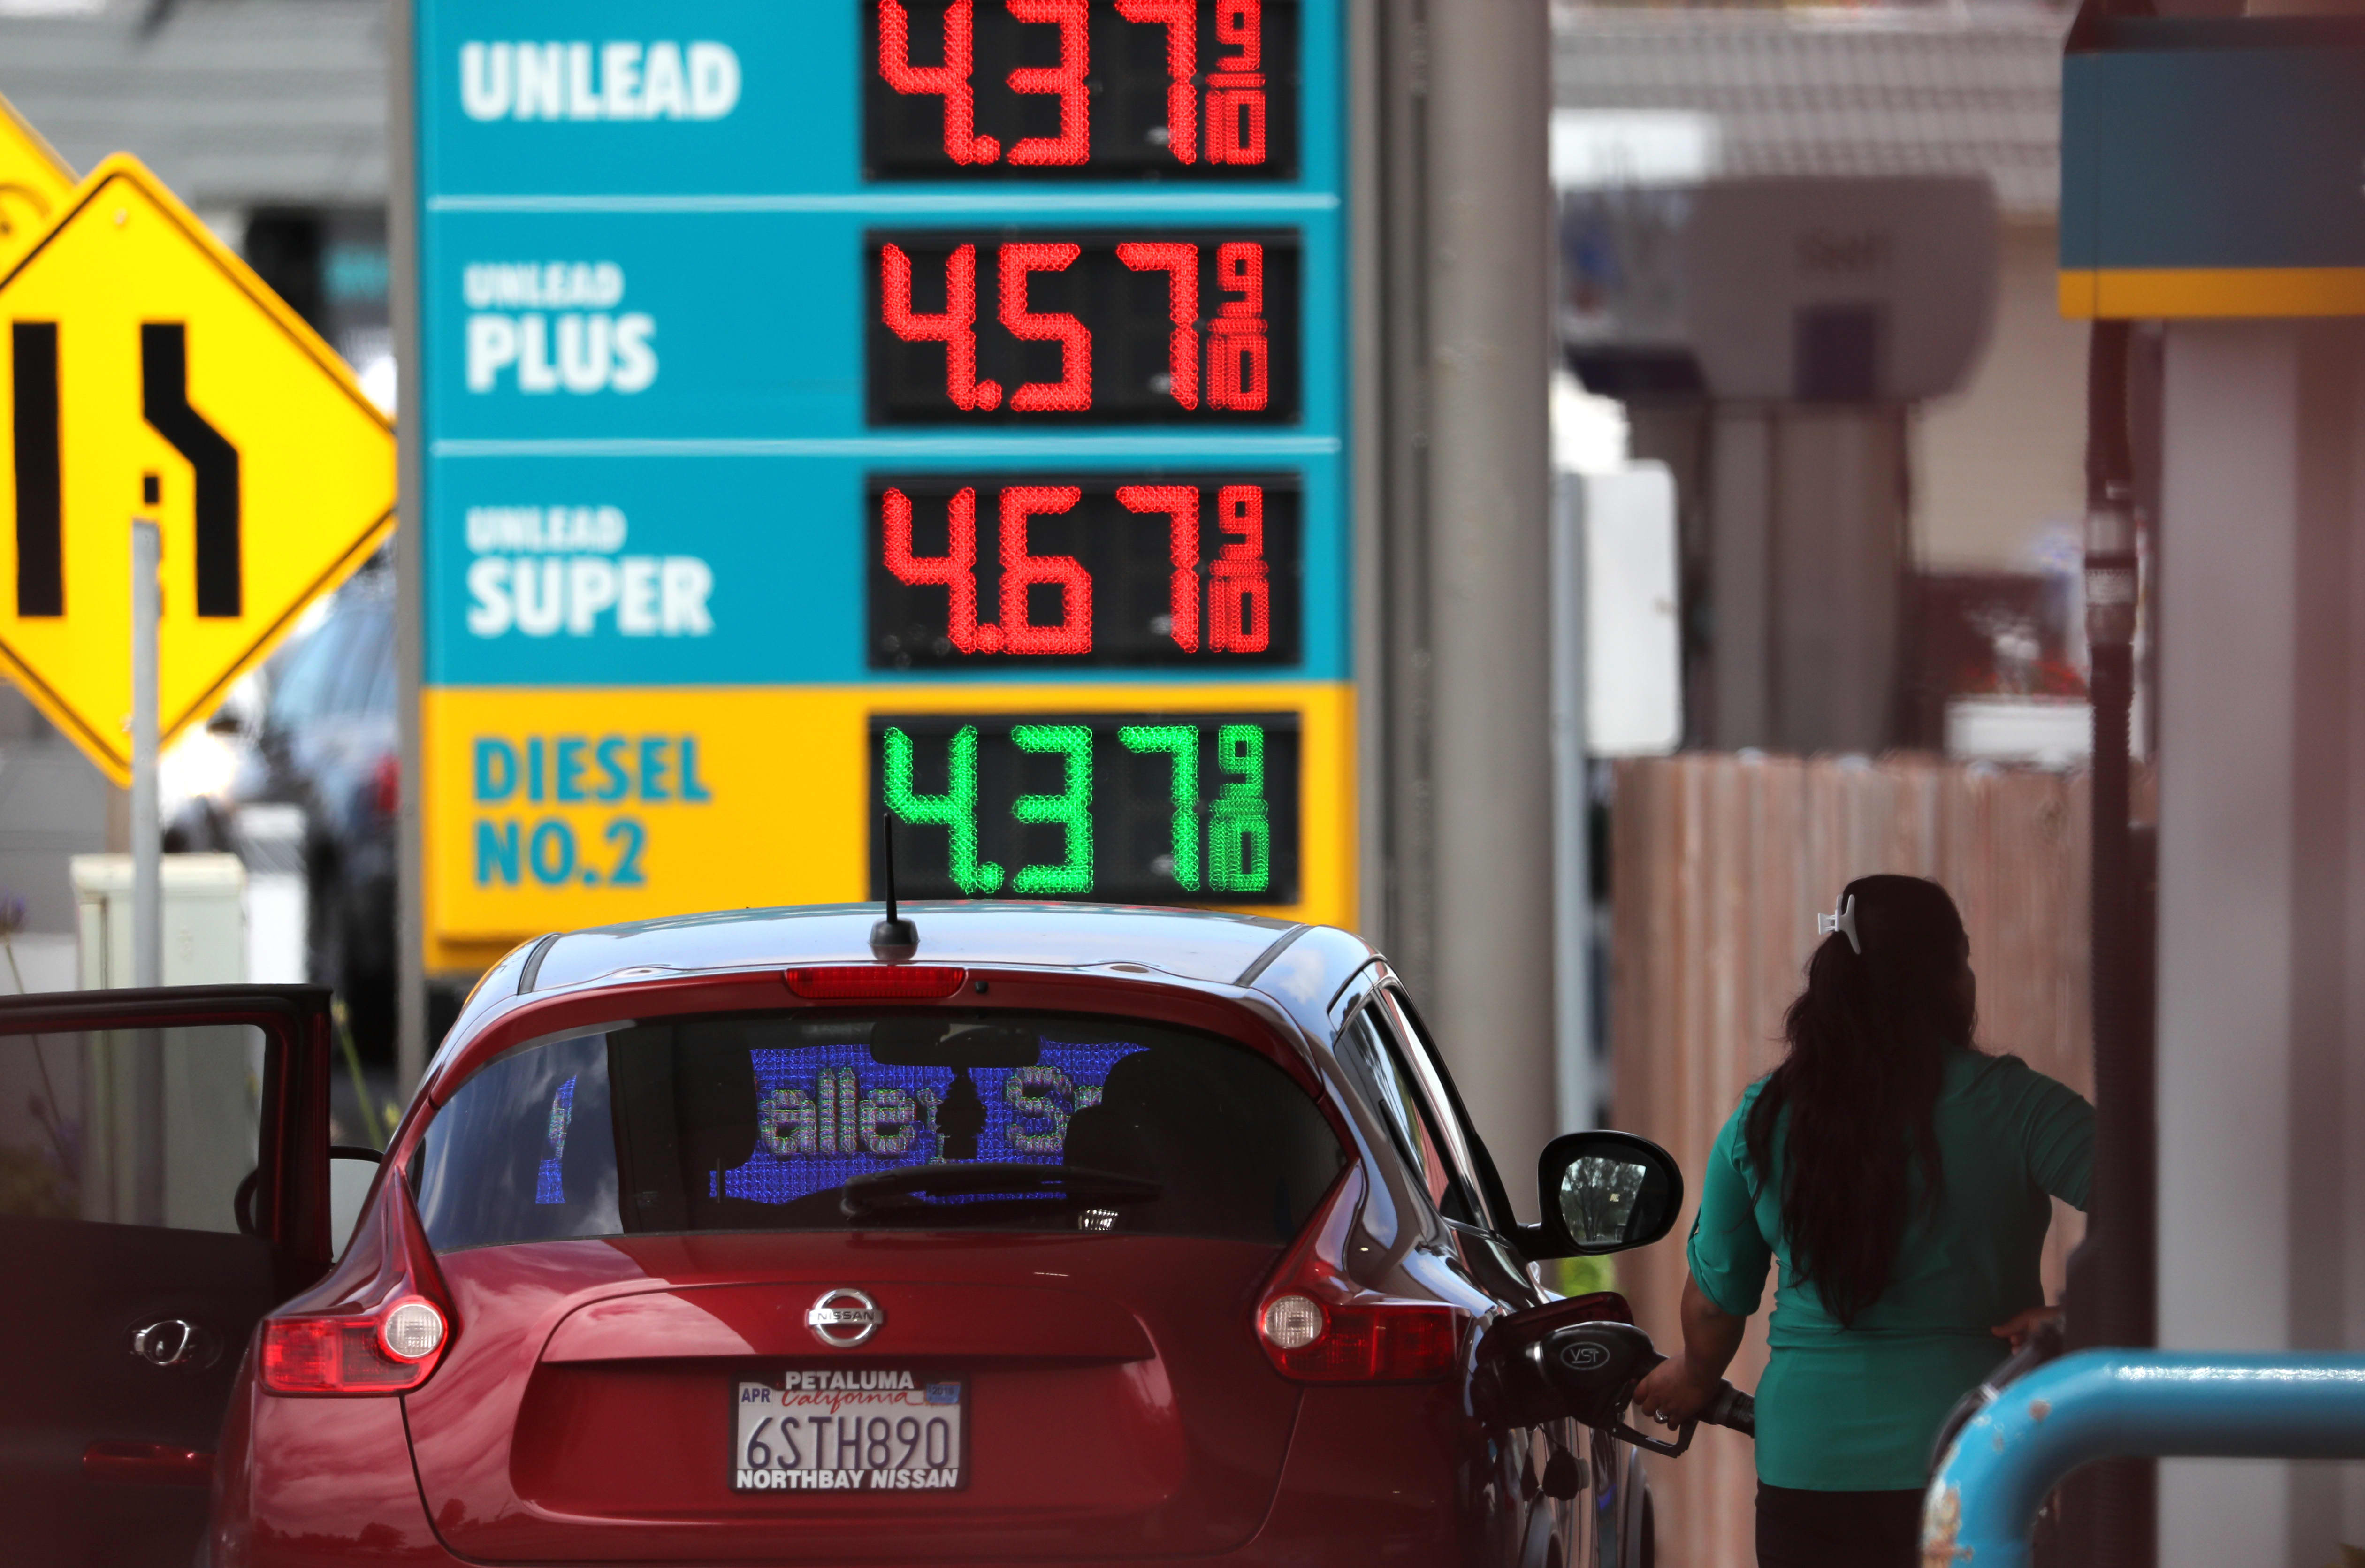 After tax hike, gas in California is now a dollar higher than the national average